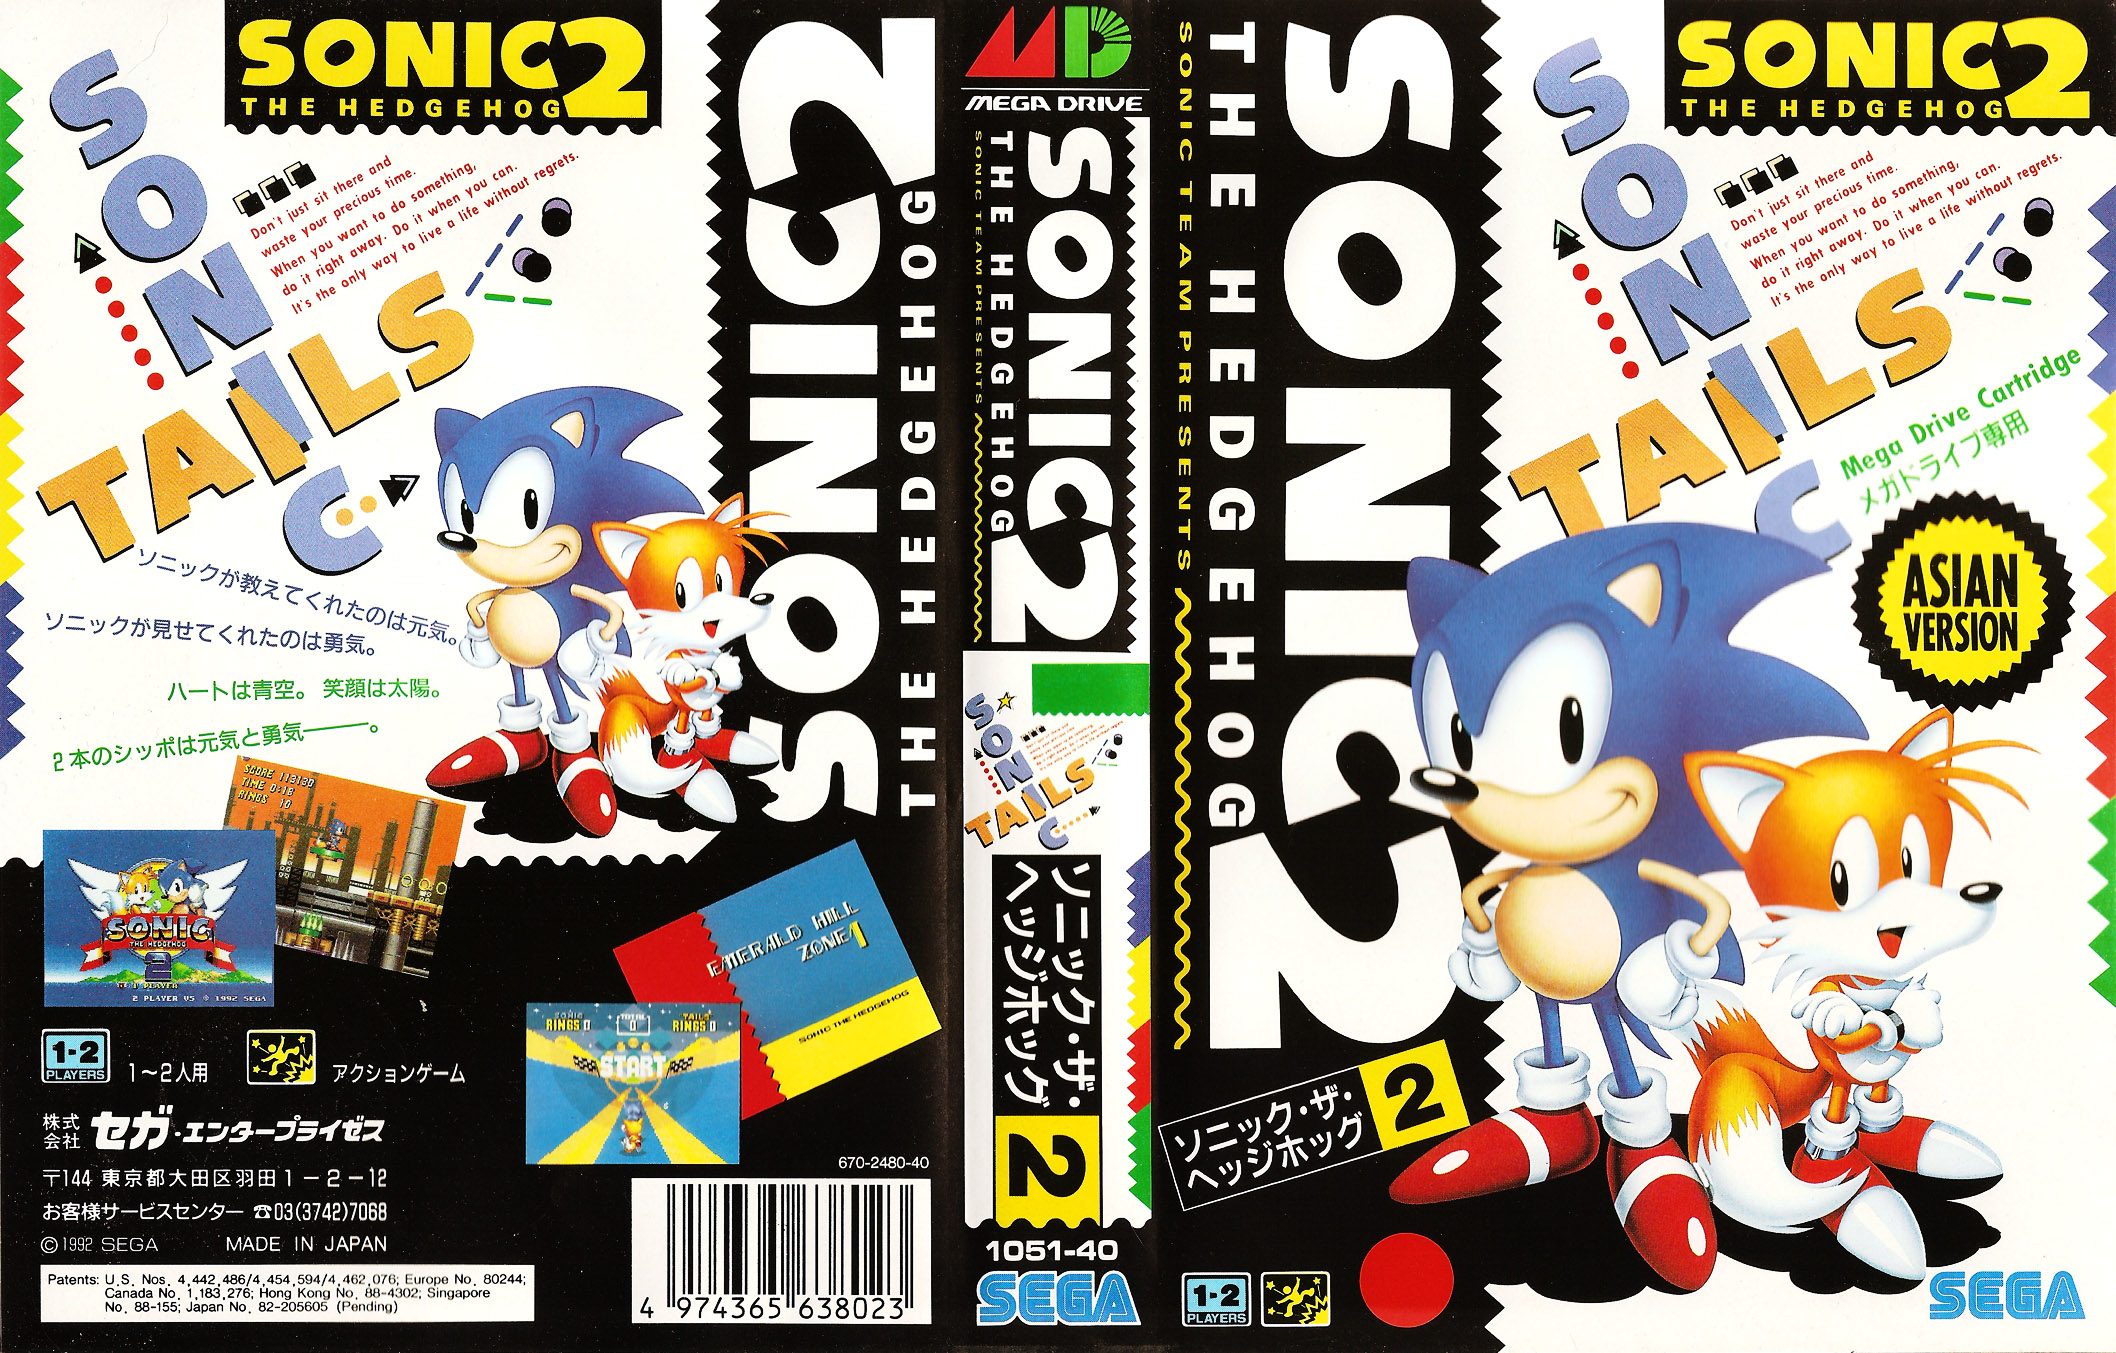 Official Art - Sonic The Hedgehog 2 | Last Minute Continue